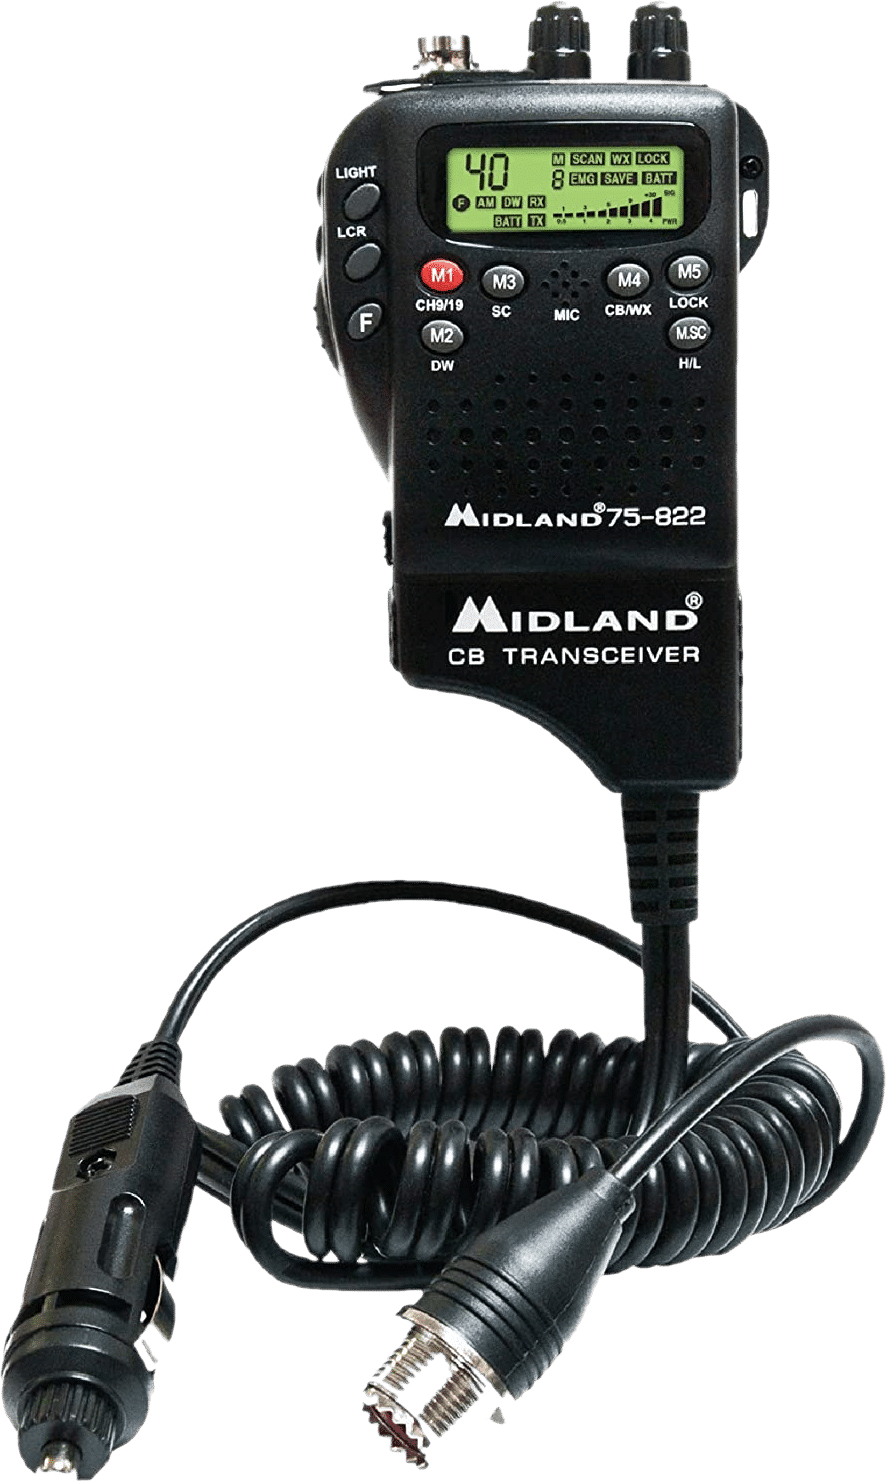 Midland 75-822 40-Channel CB Radio